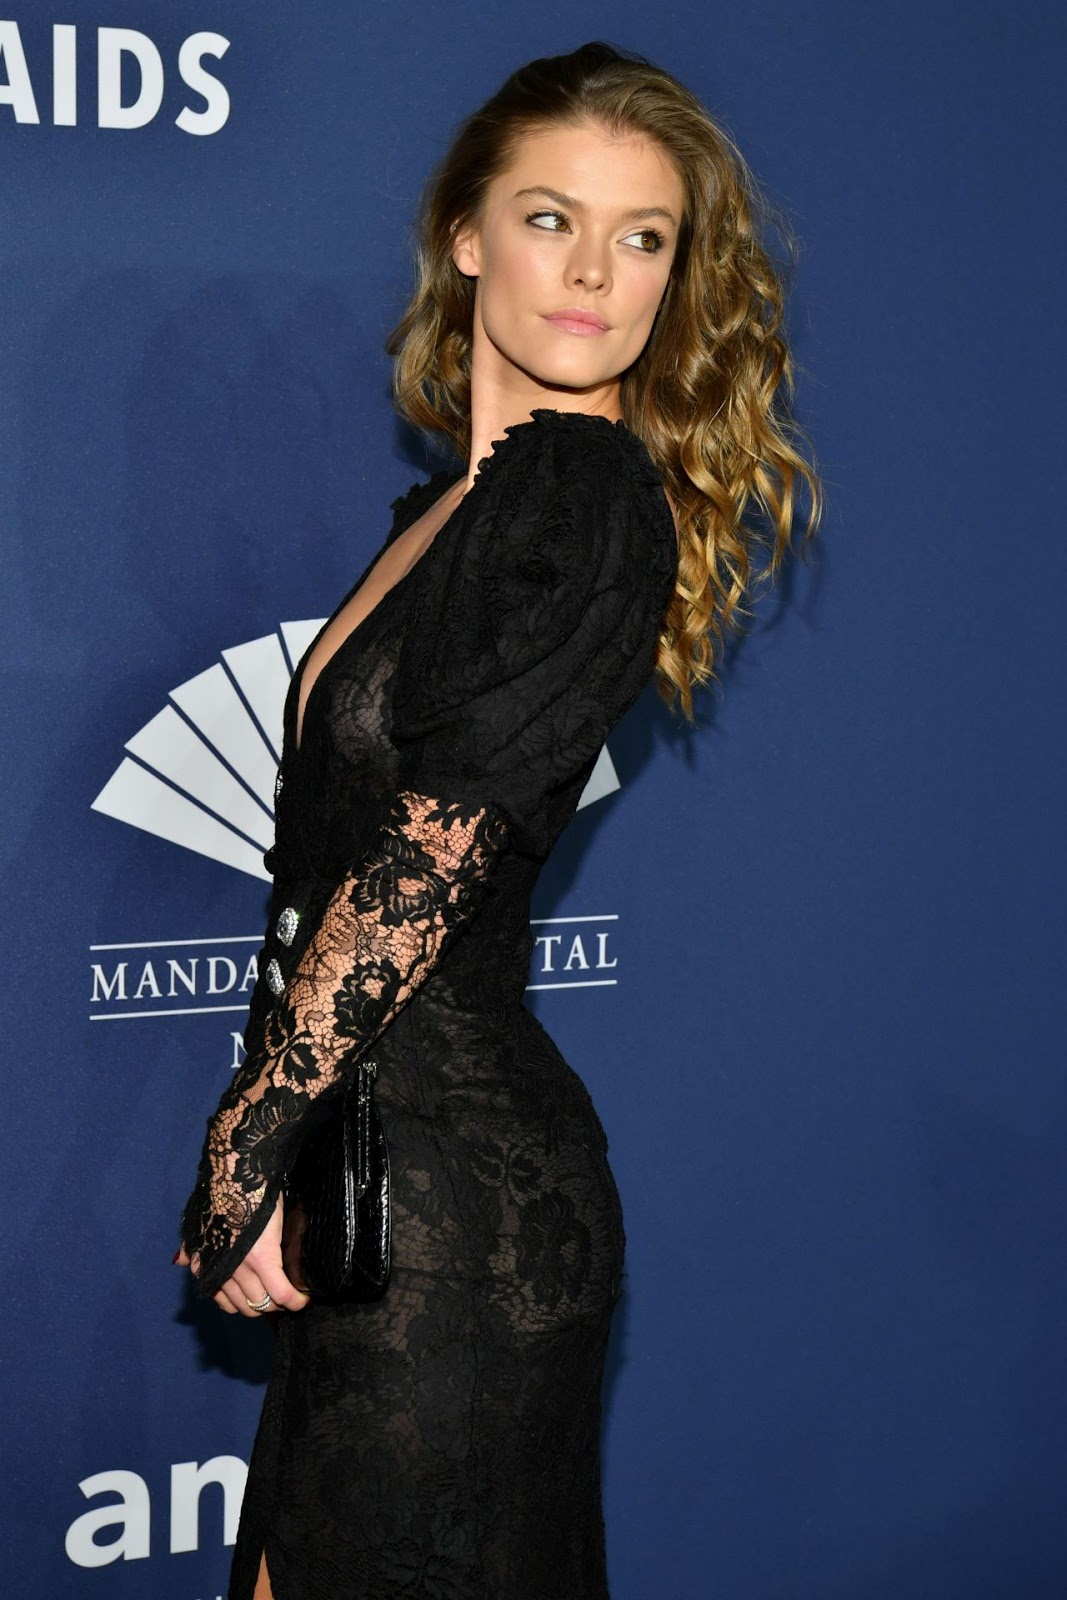 Nina Agdal - 22nd Annual amfAR Gala Benefit For AIDS Research in NYC